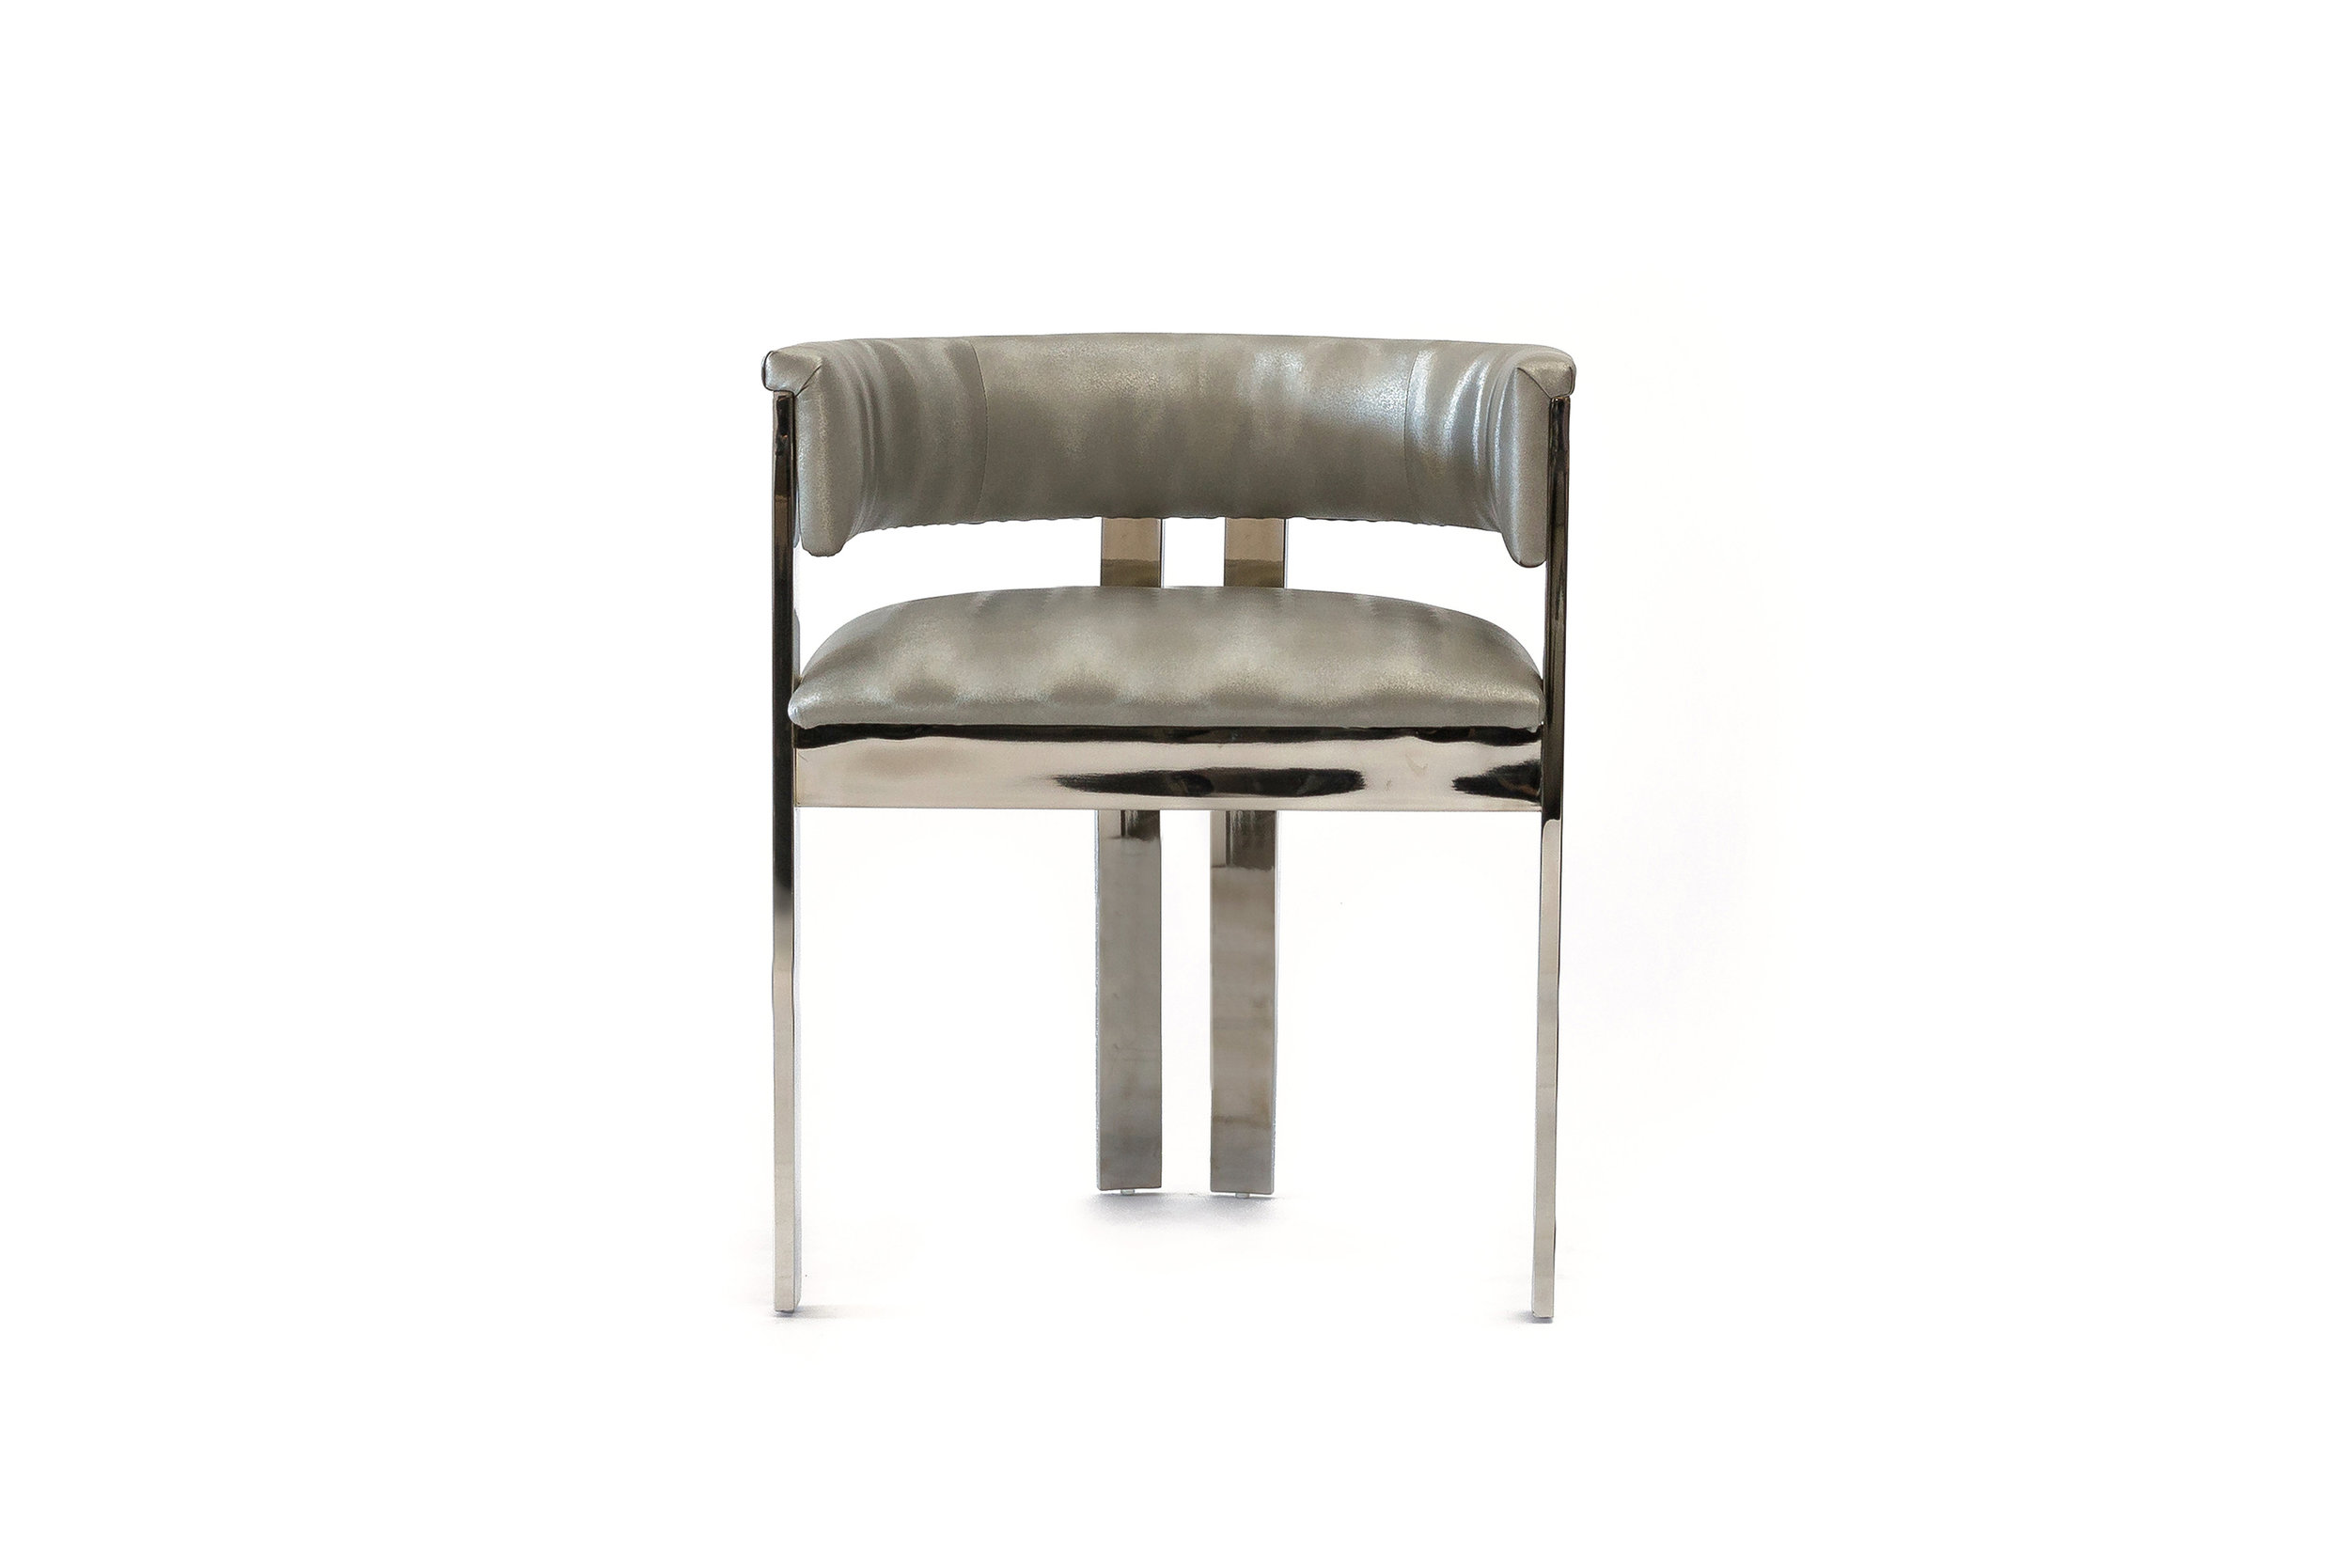 SWANSON CHAIR FRONT VIEW.jpg